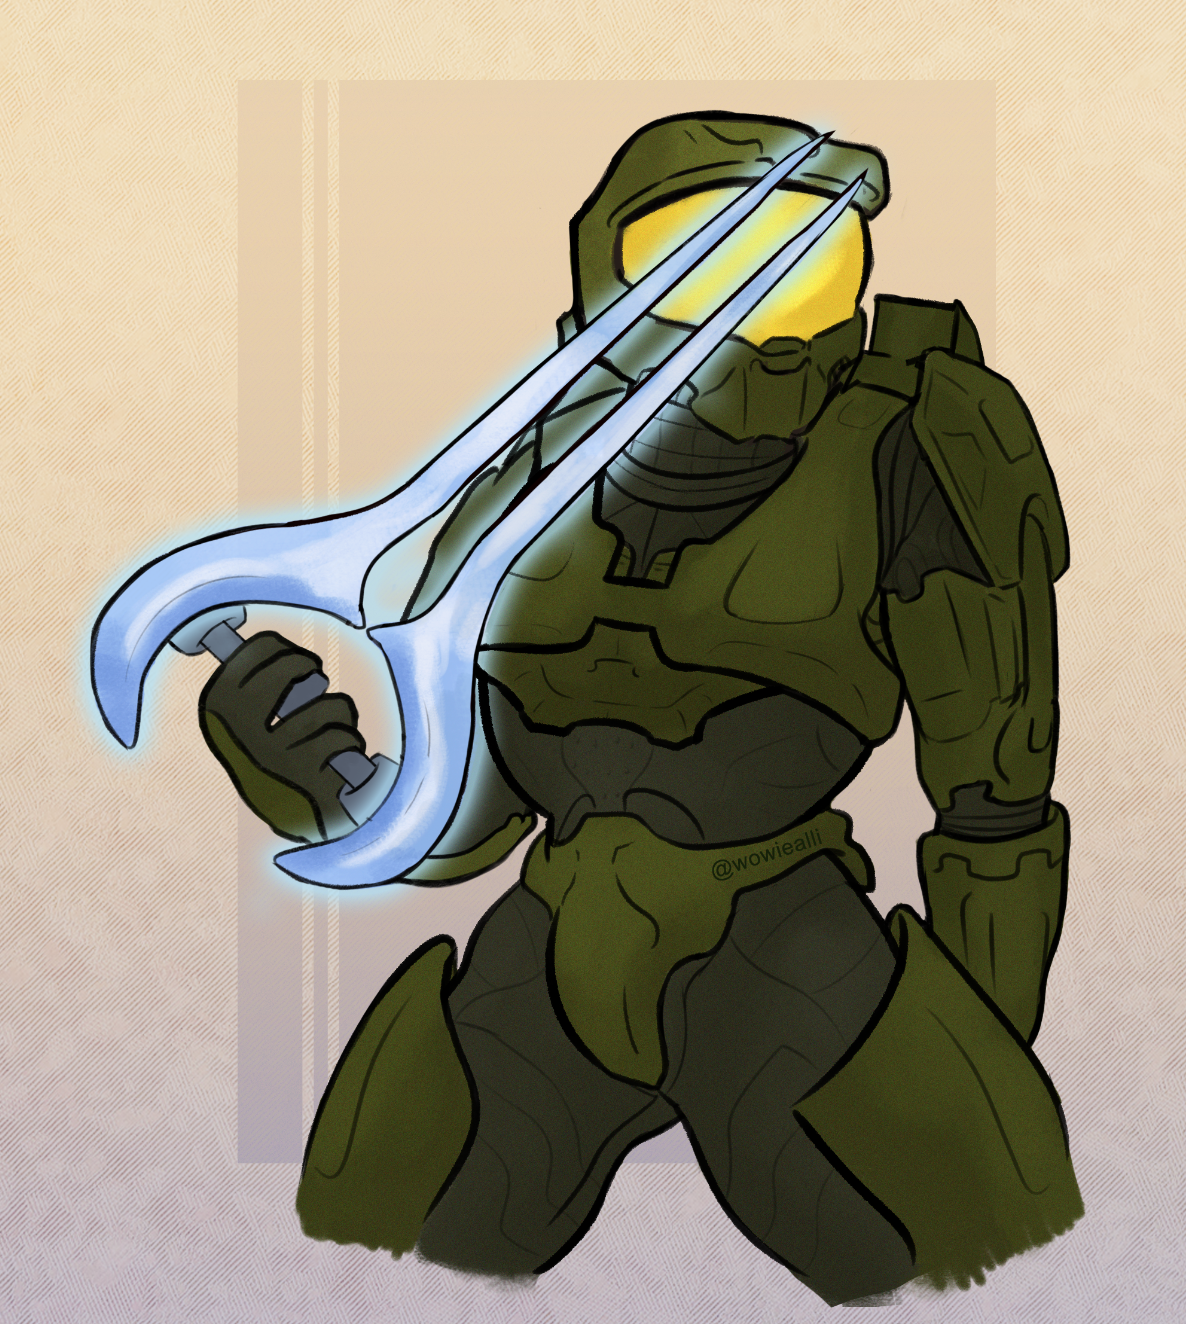 Halo 4 Masterchief Render 2 By Crussong On Deviantart Halo 4 Halo Cosplay Halo Game